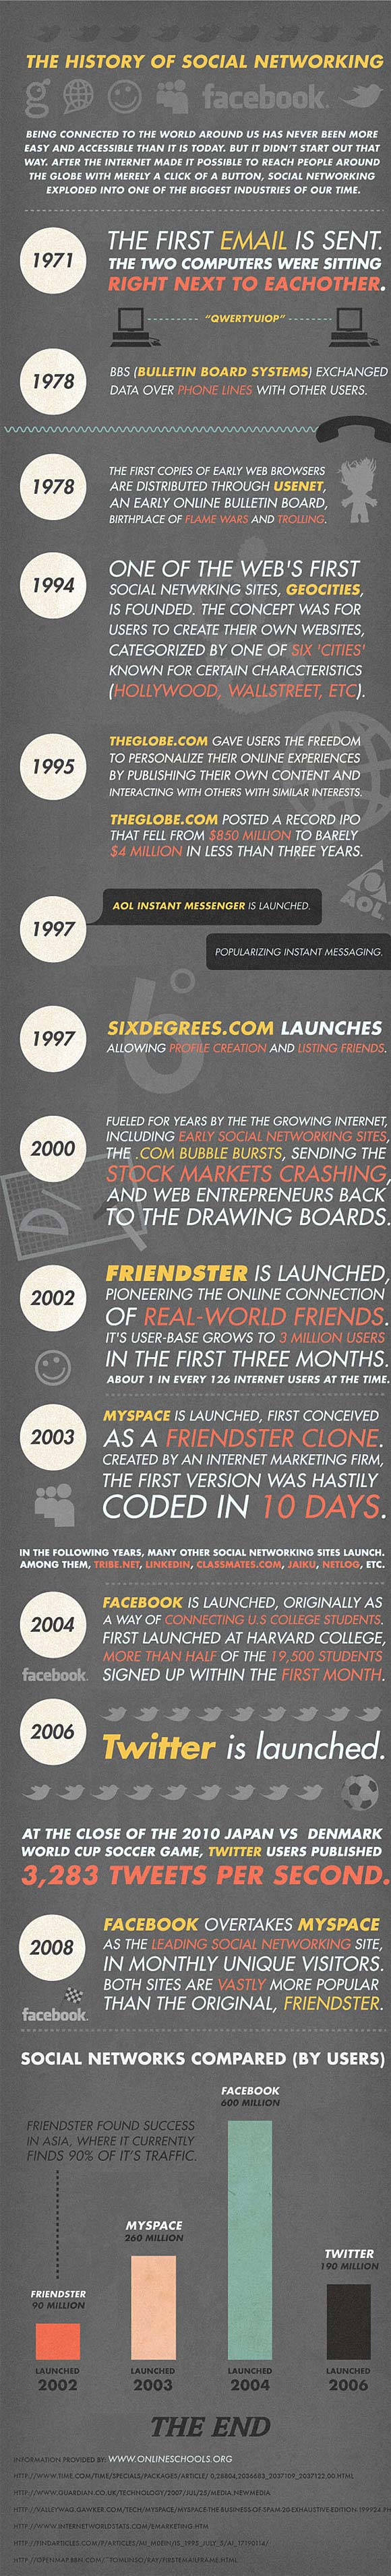 Social networking infographic: the rise of Facebook, the fall of Friendster